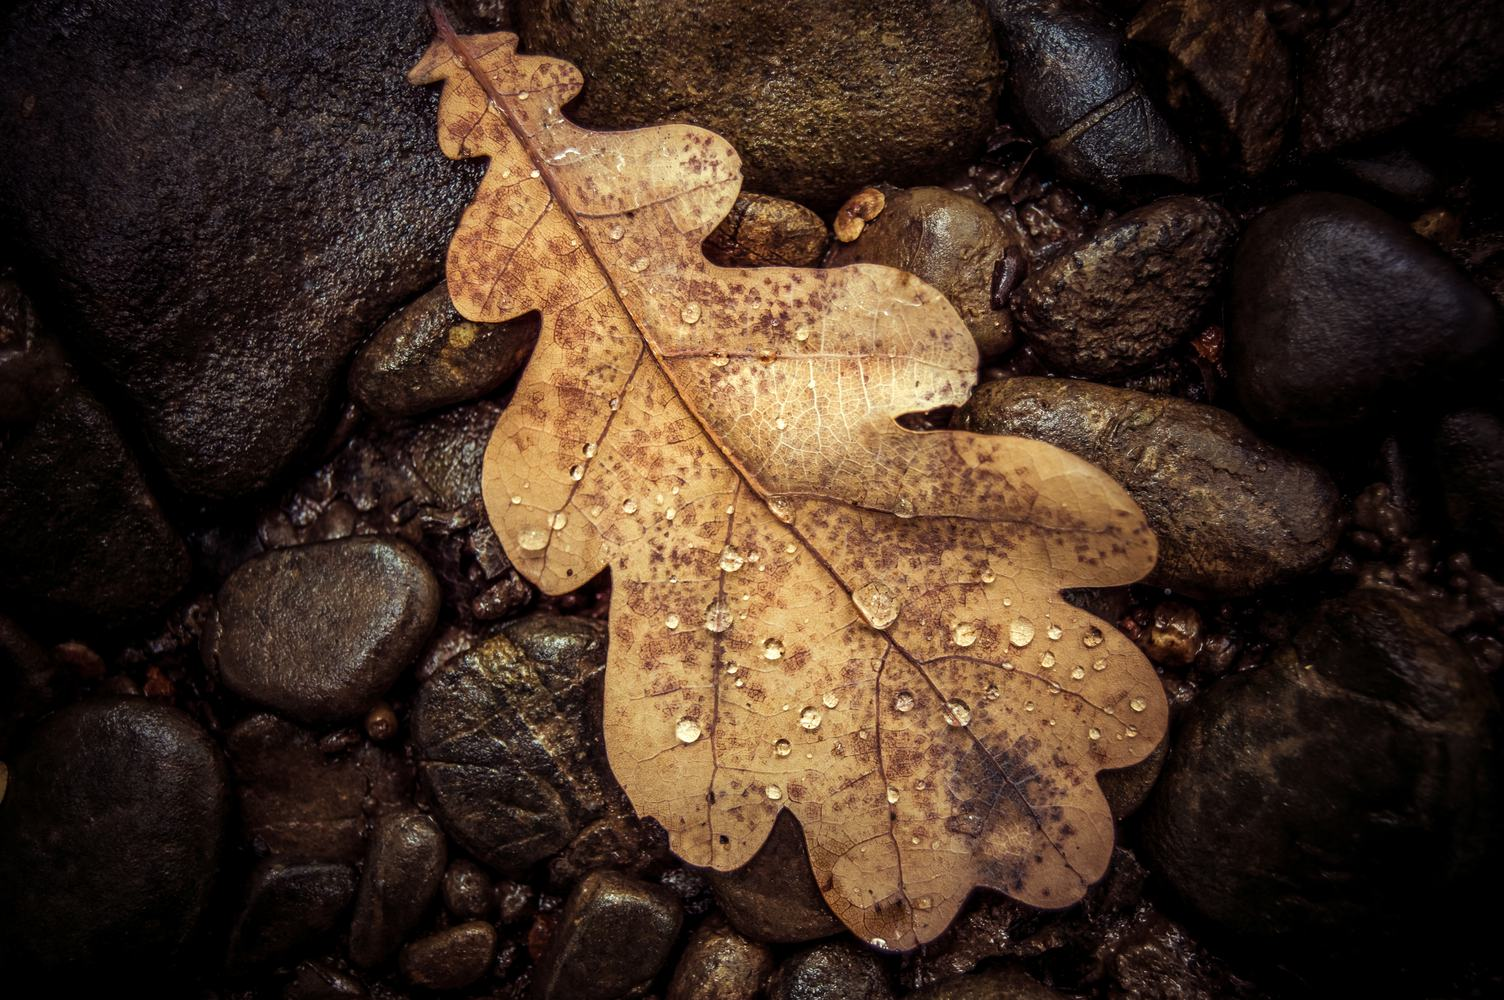 Brown and Wet Oak Leaf on the Stones